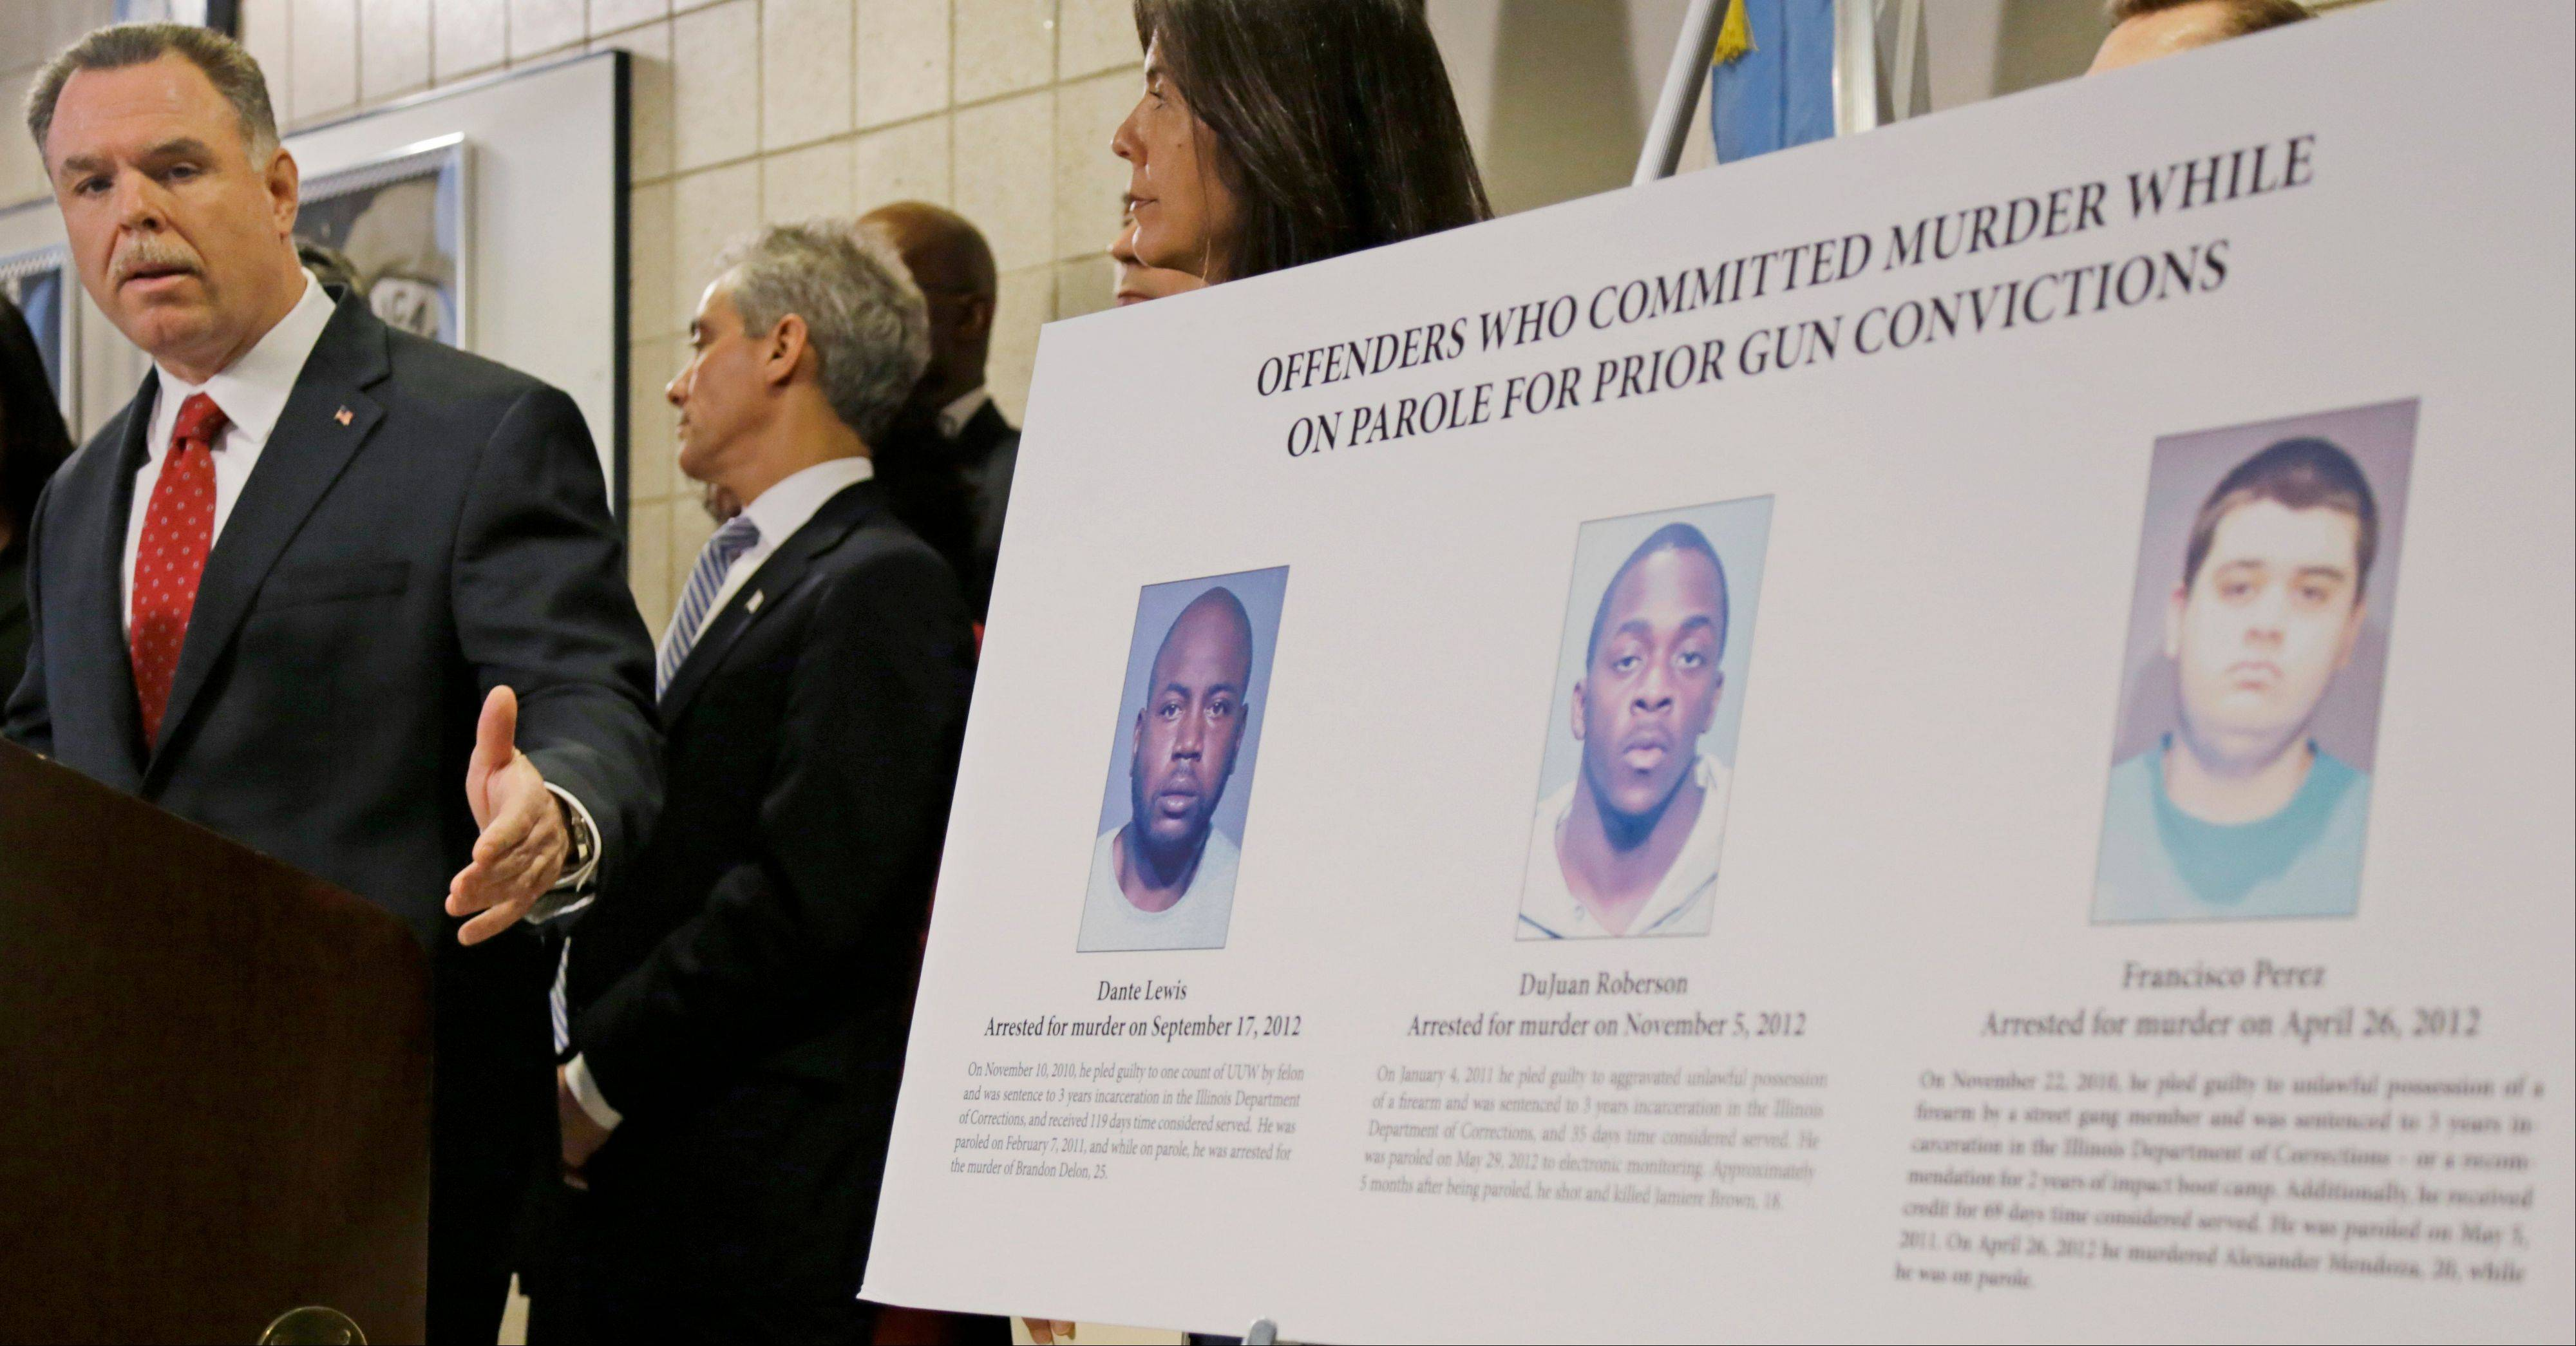 During a news conference Monday, Chicago Police Superintendent Garry McCarthy points to a poster showing three people who committed murders while on parole for prior gun convictions.